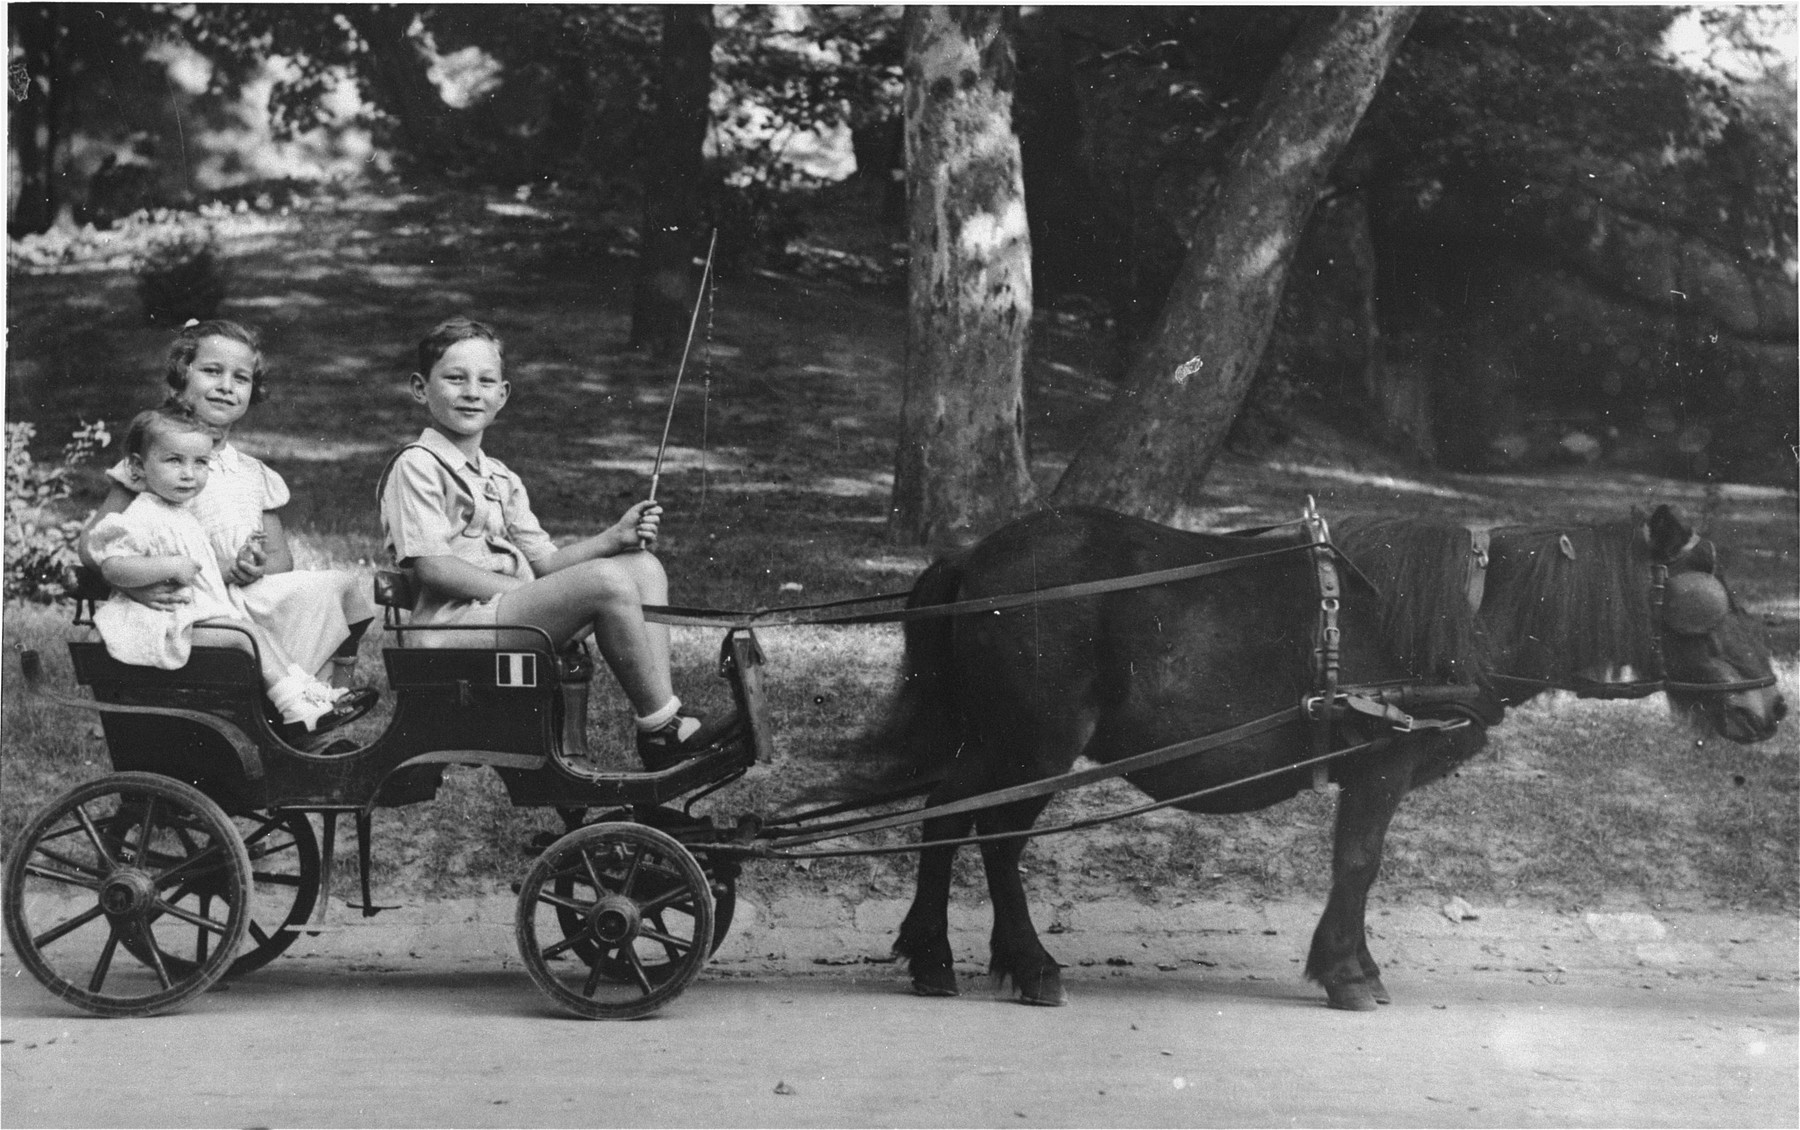 Three Jewish children ride in a miniature horse-drawn carriage in a city park in Budapest.  Pictured are seven-year-old Gyorgy Pick, who is driving his two cousins, Agnes Szalai (age seven) and Susan Lederer (age one).